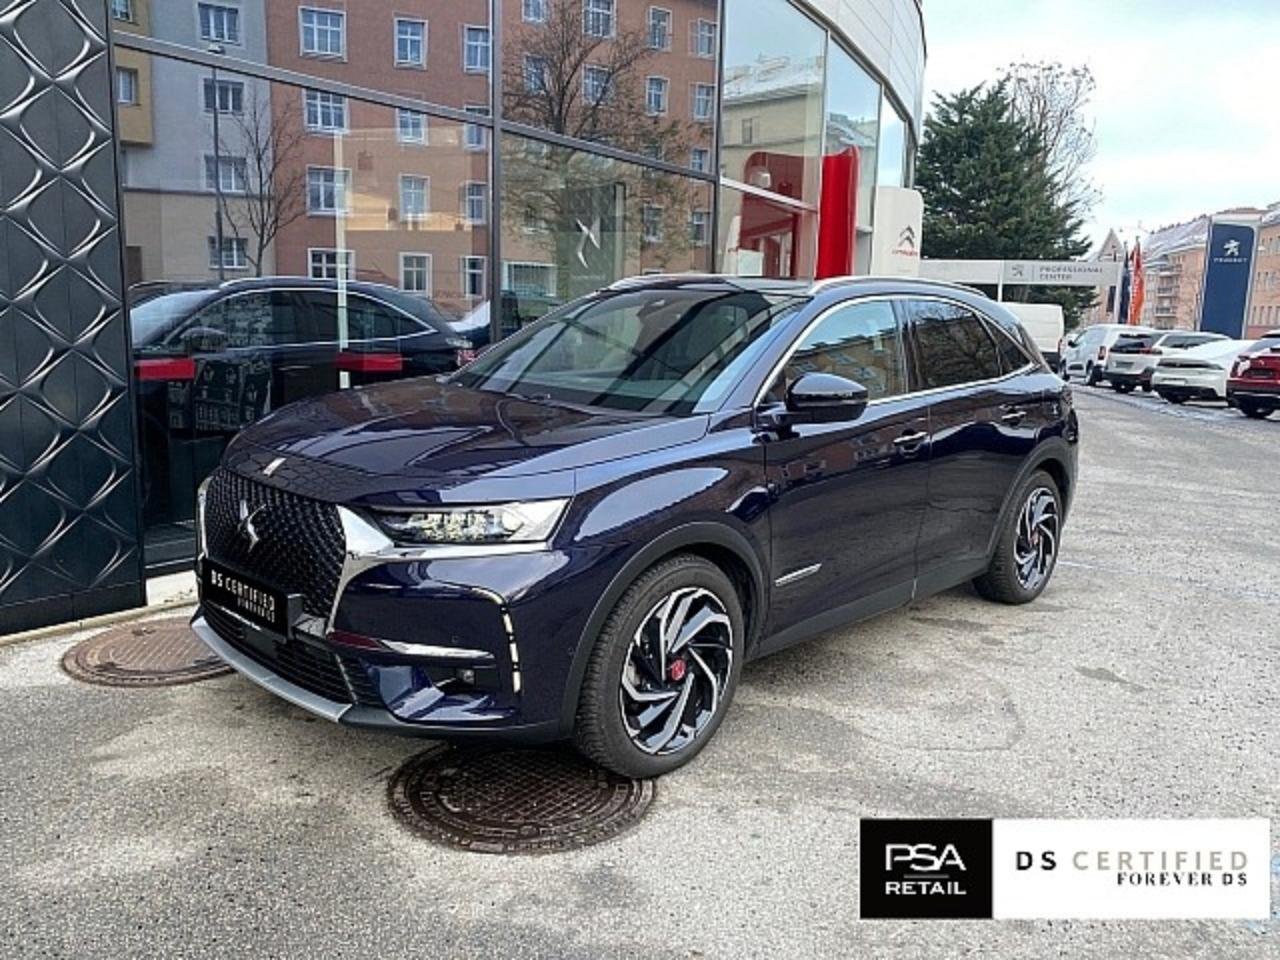 Ds DS 7 Crossback Crossback E-Tense 300 EAT8 4x4 Be Chic Aut.